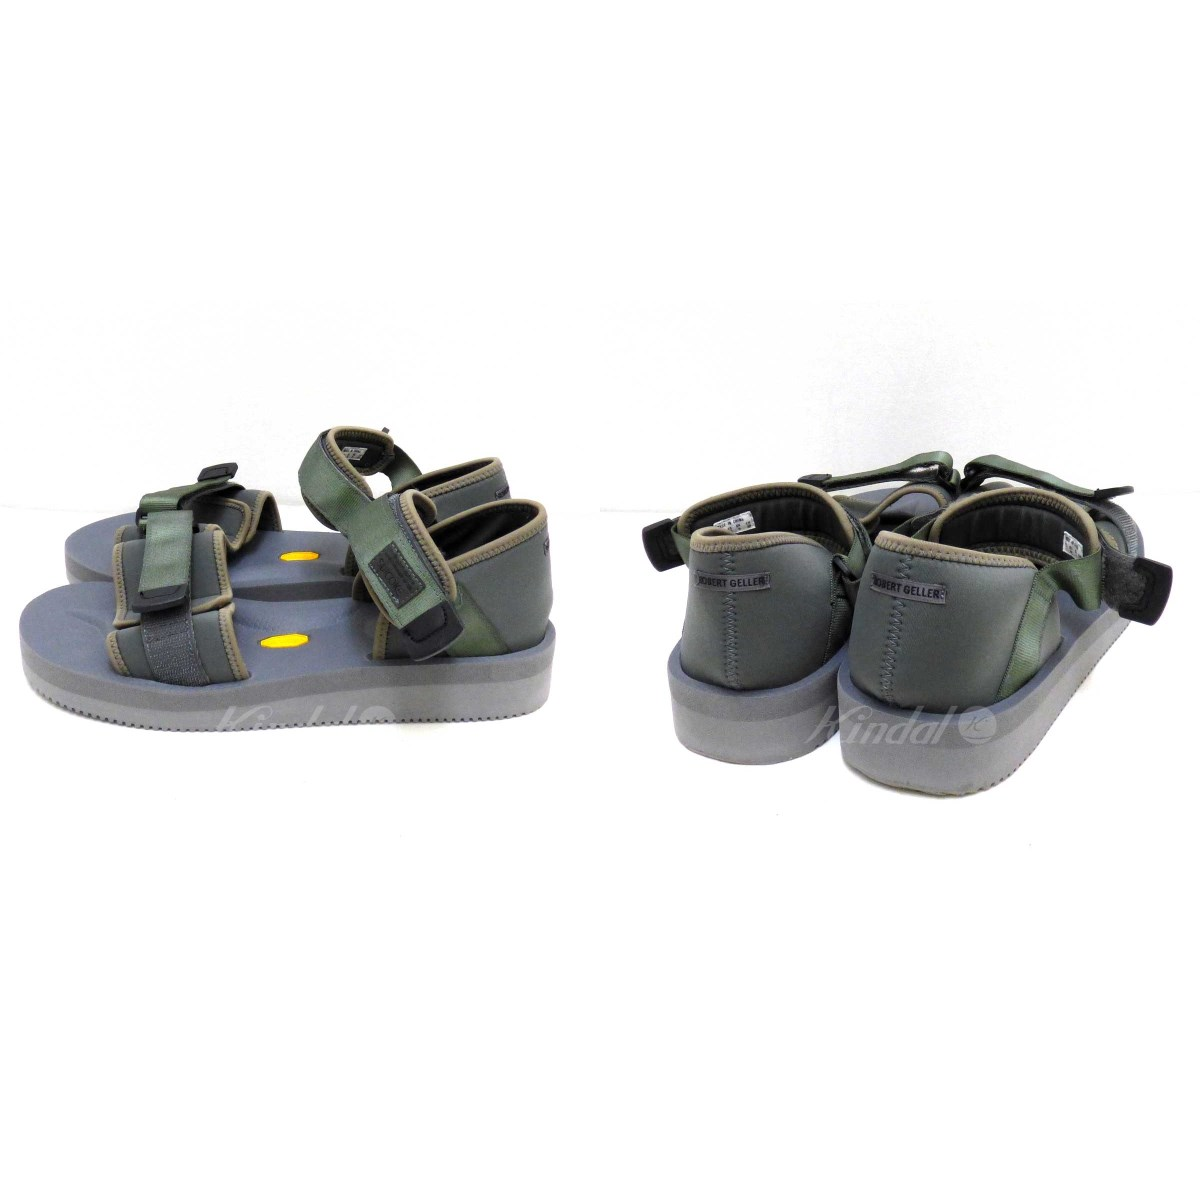 ca3037420d ... Suicoke ROBERT GELLER collaboration sandals Vibram sole gray size: US10  (Sui cook) ...